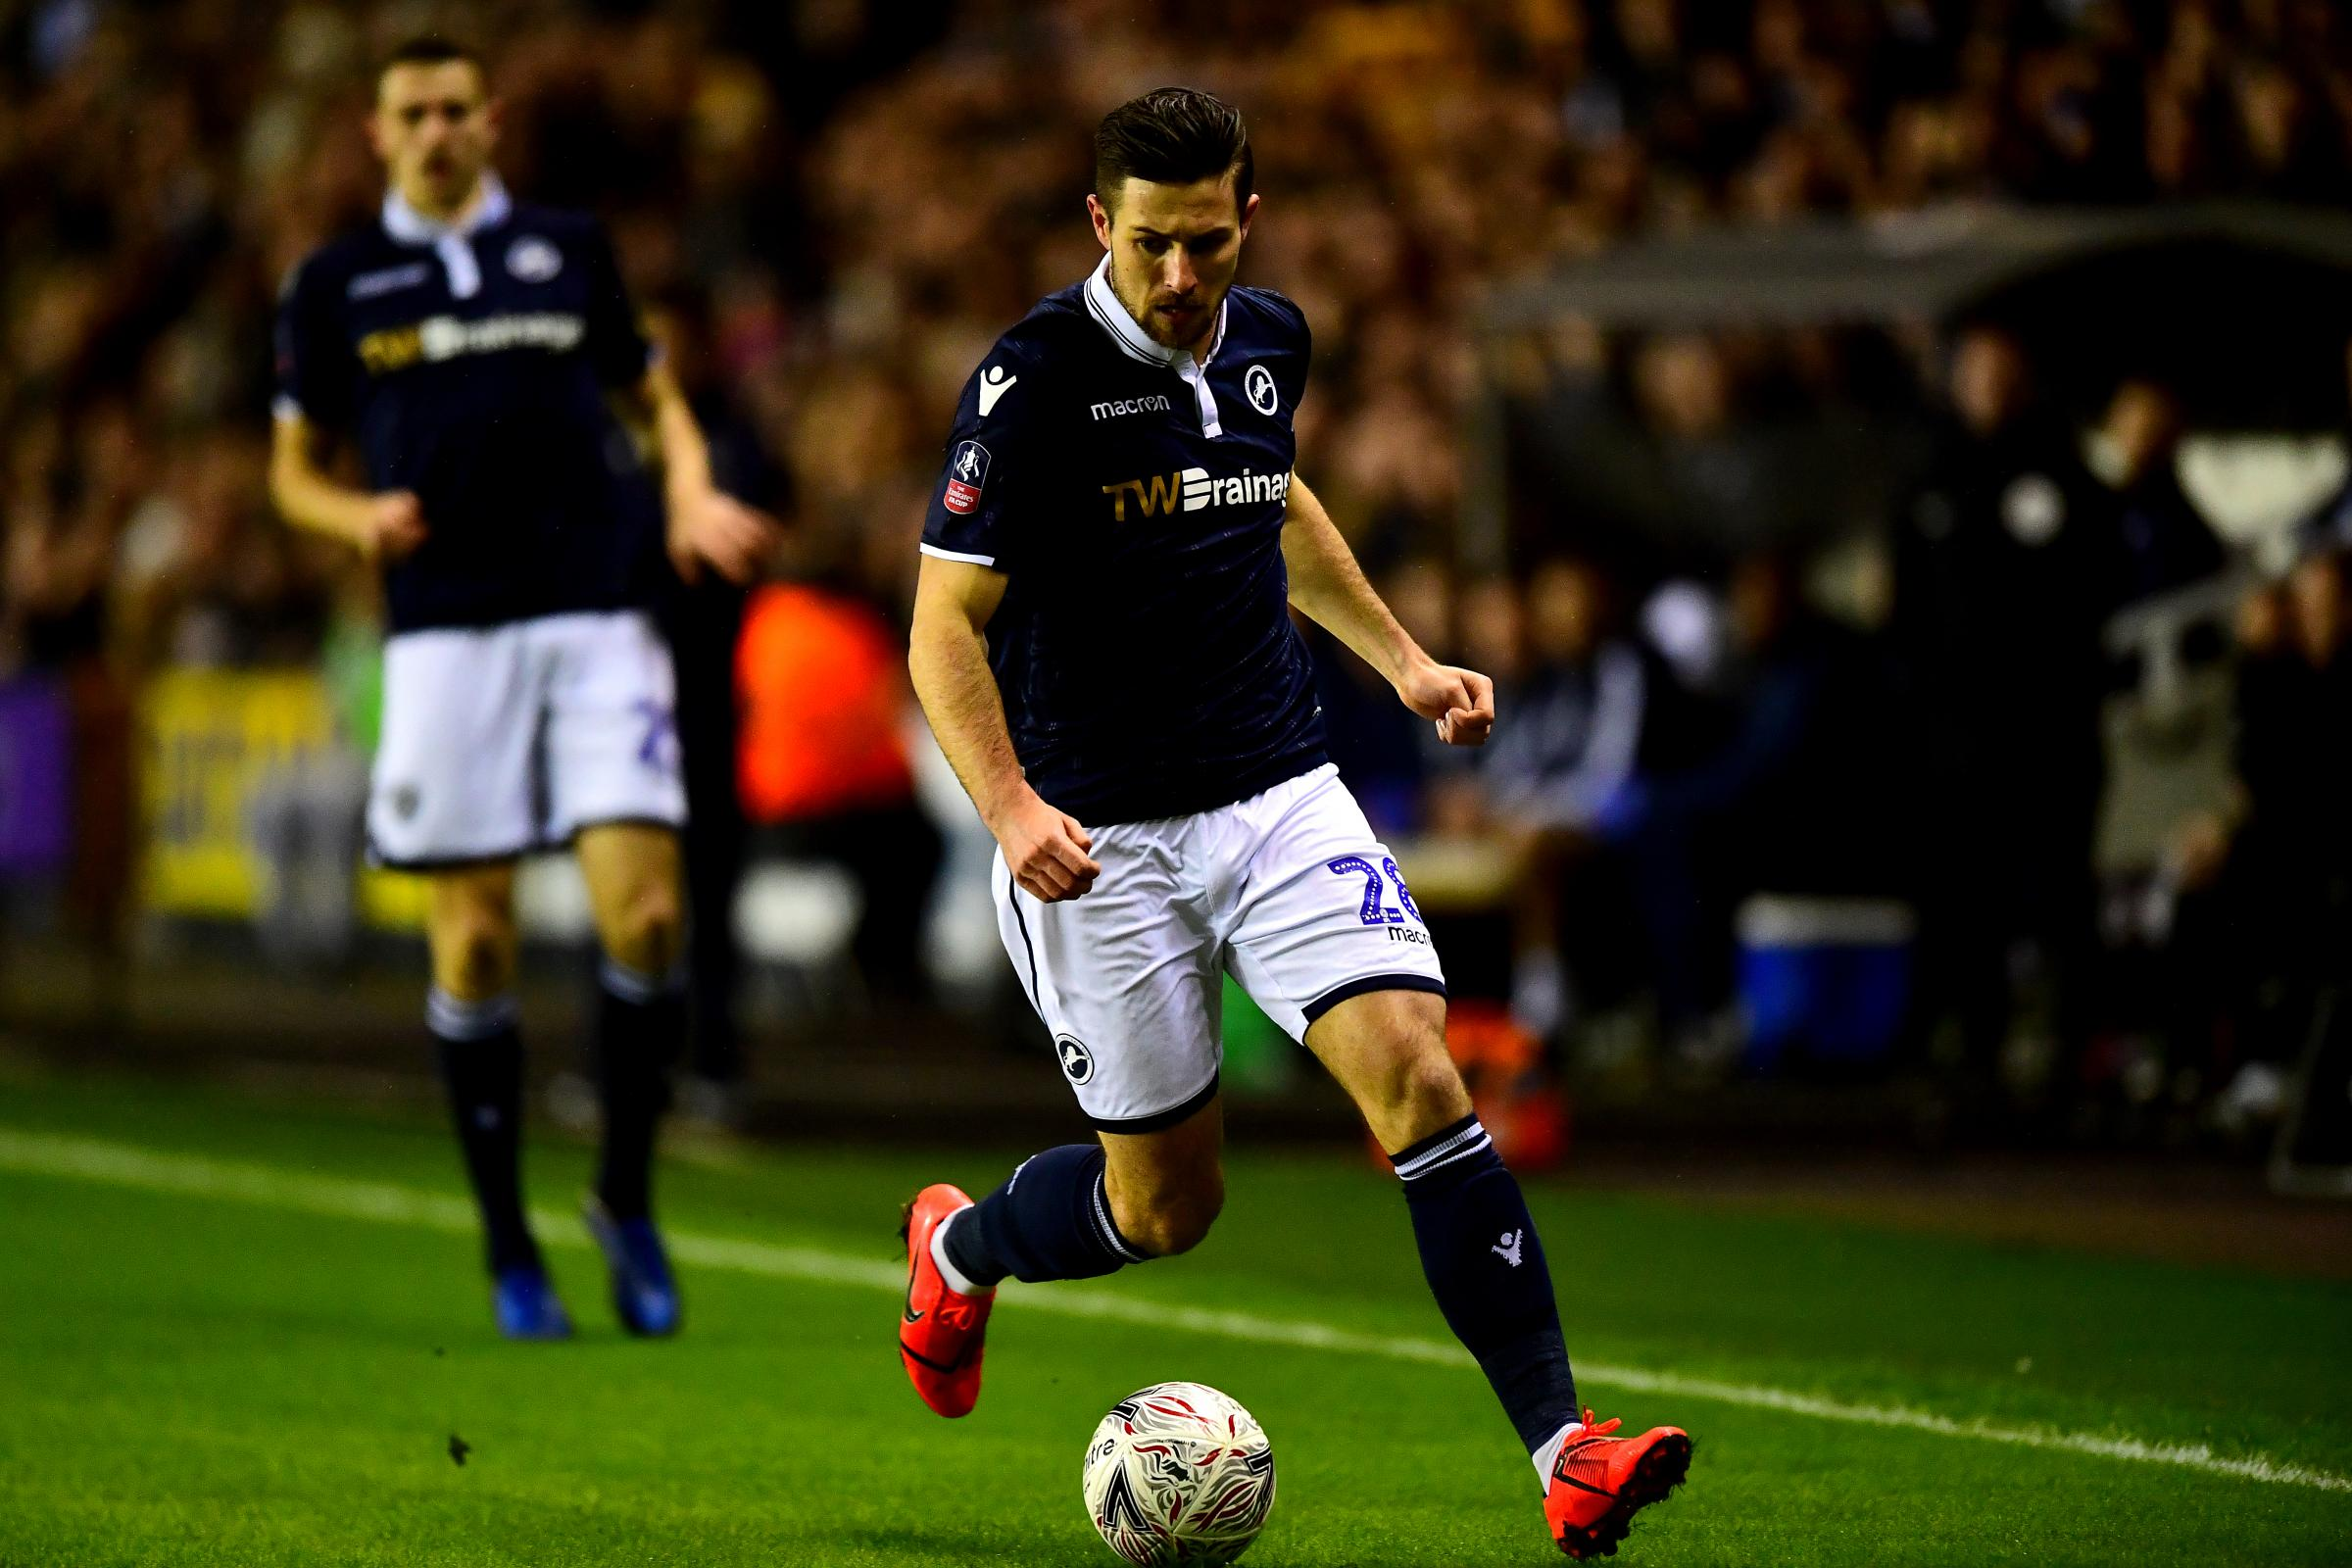 Millwall's Ryan Leonard during the FA Cup fourth round match at The Den. (Photo credit: Victoria Jones/PA Wire.)